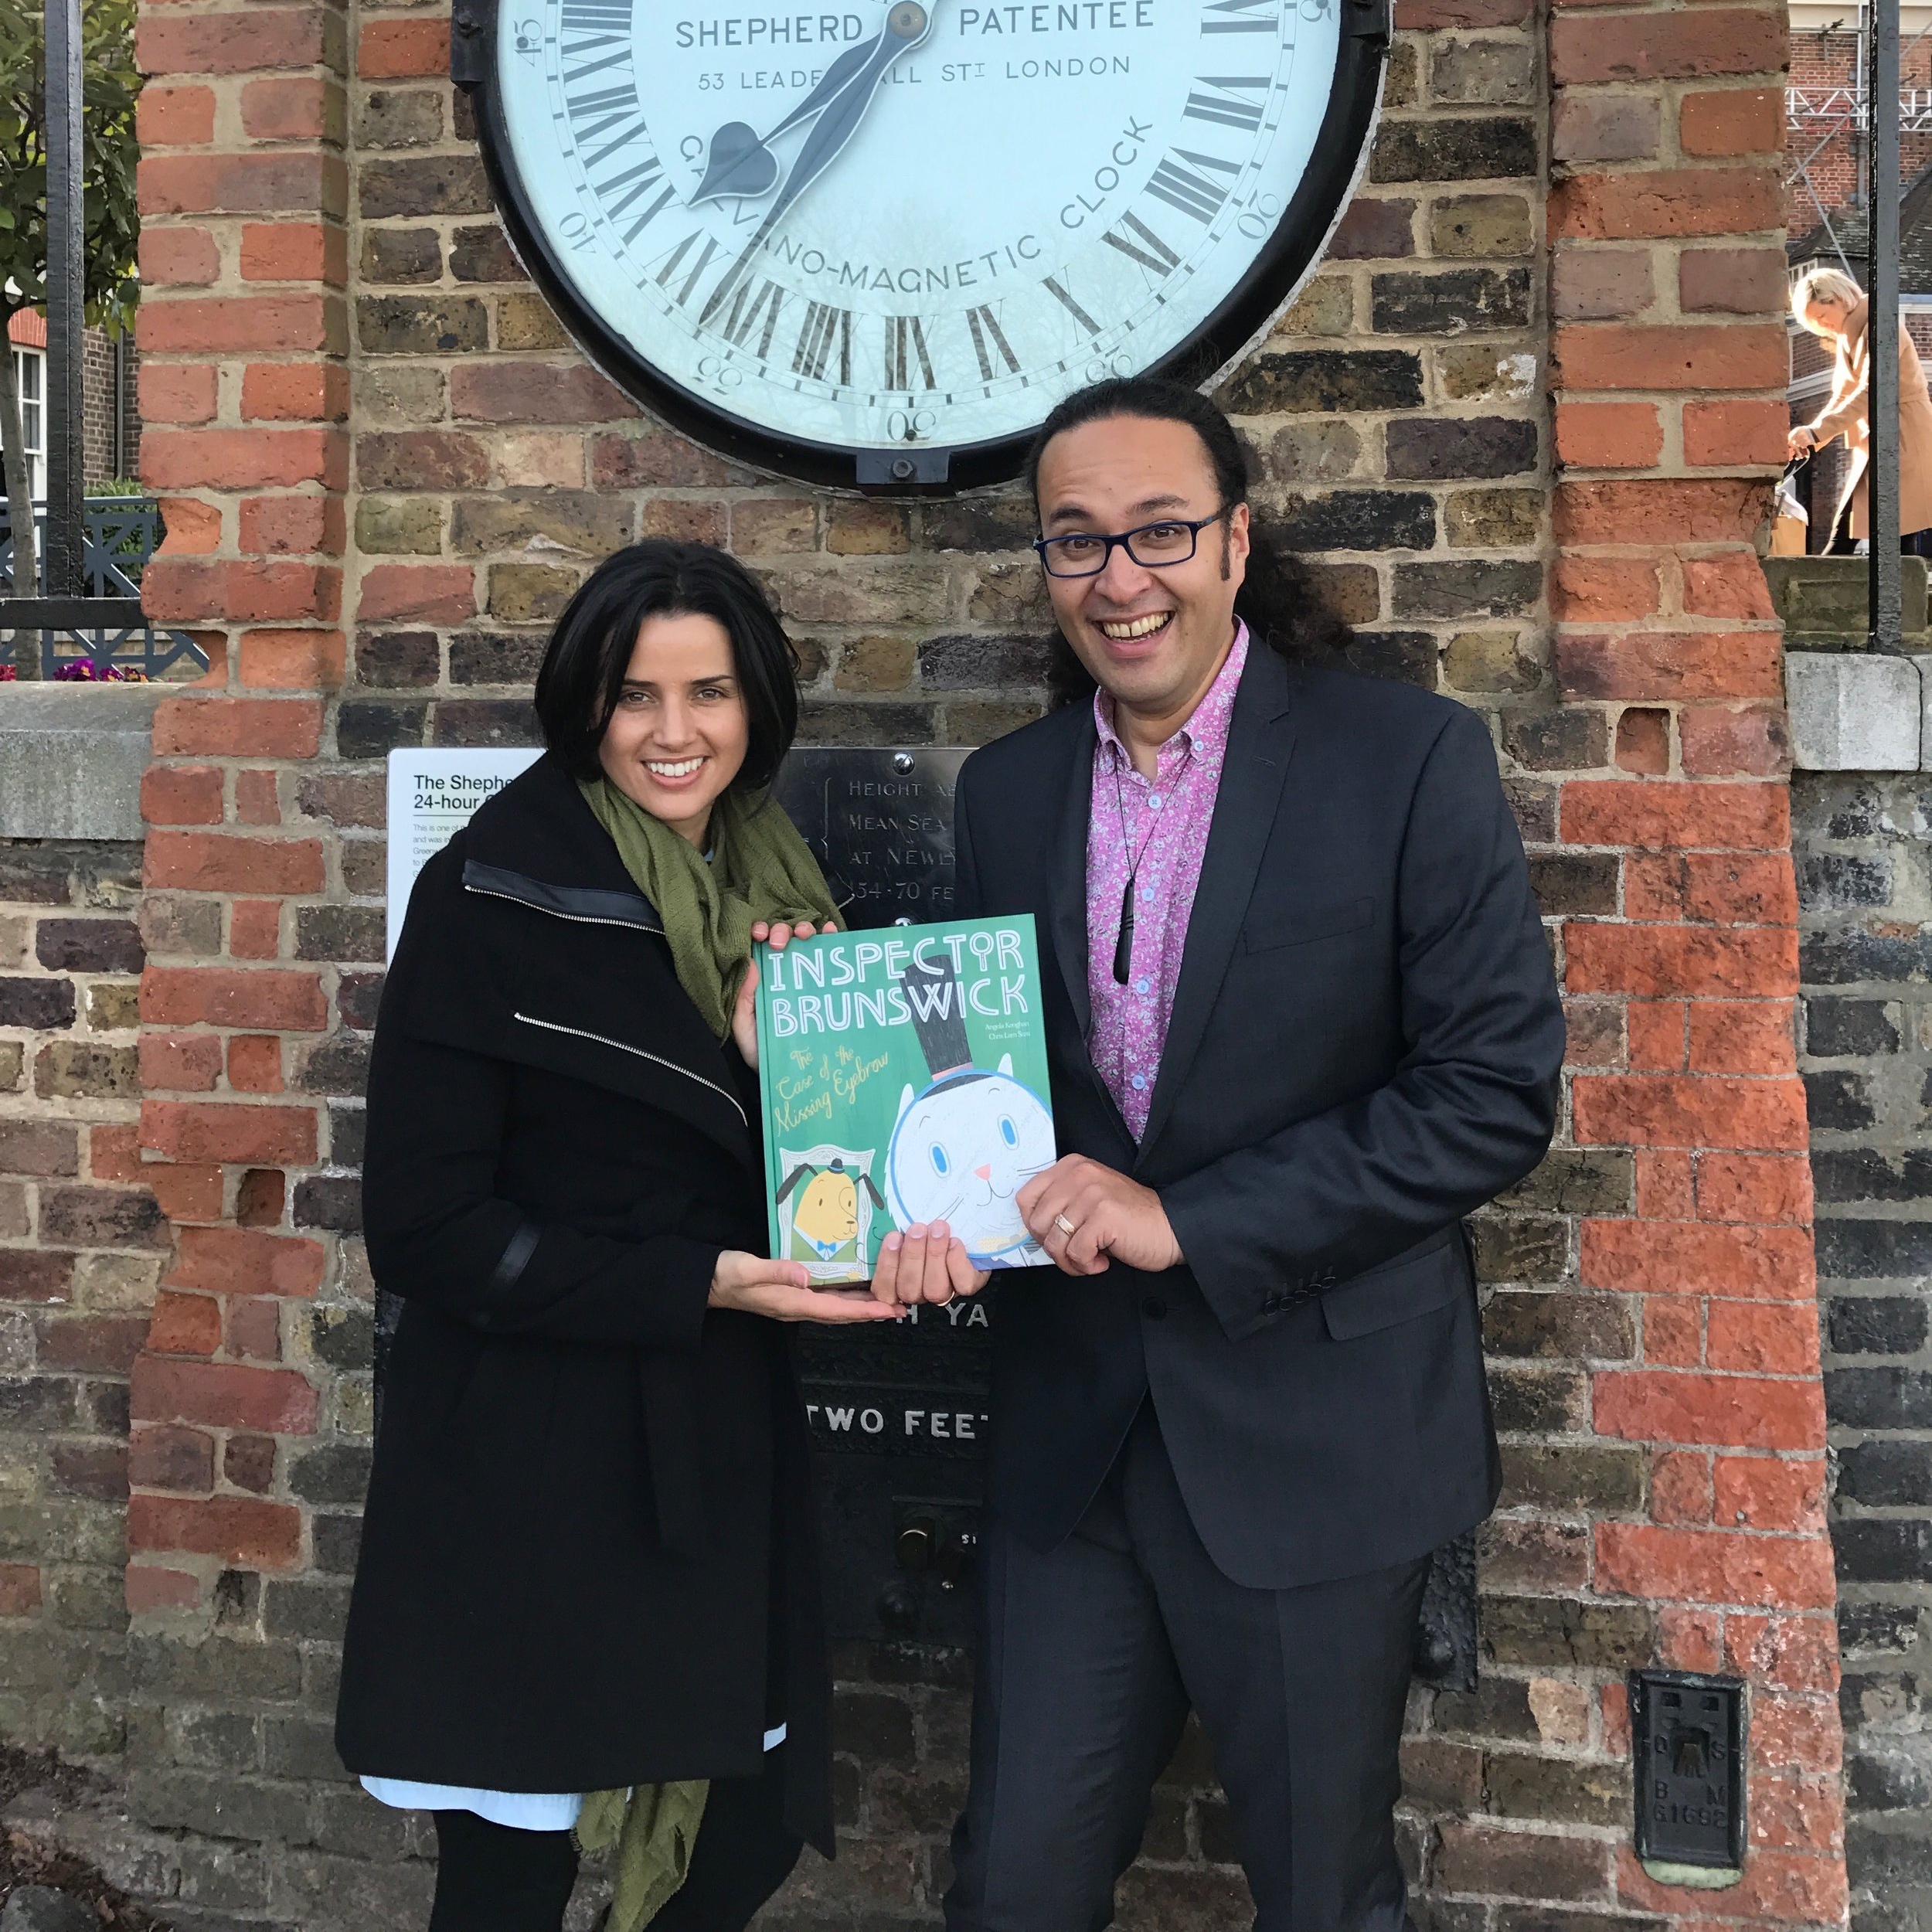 Angela and Chris debut their book in London